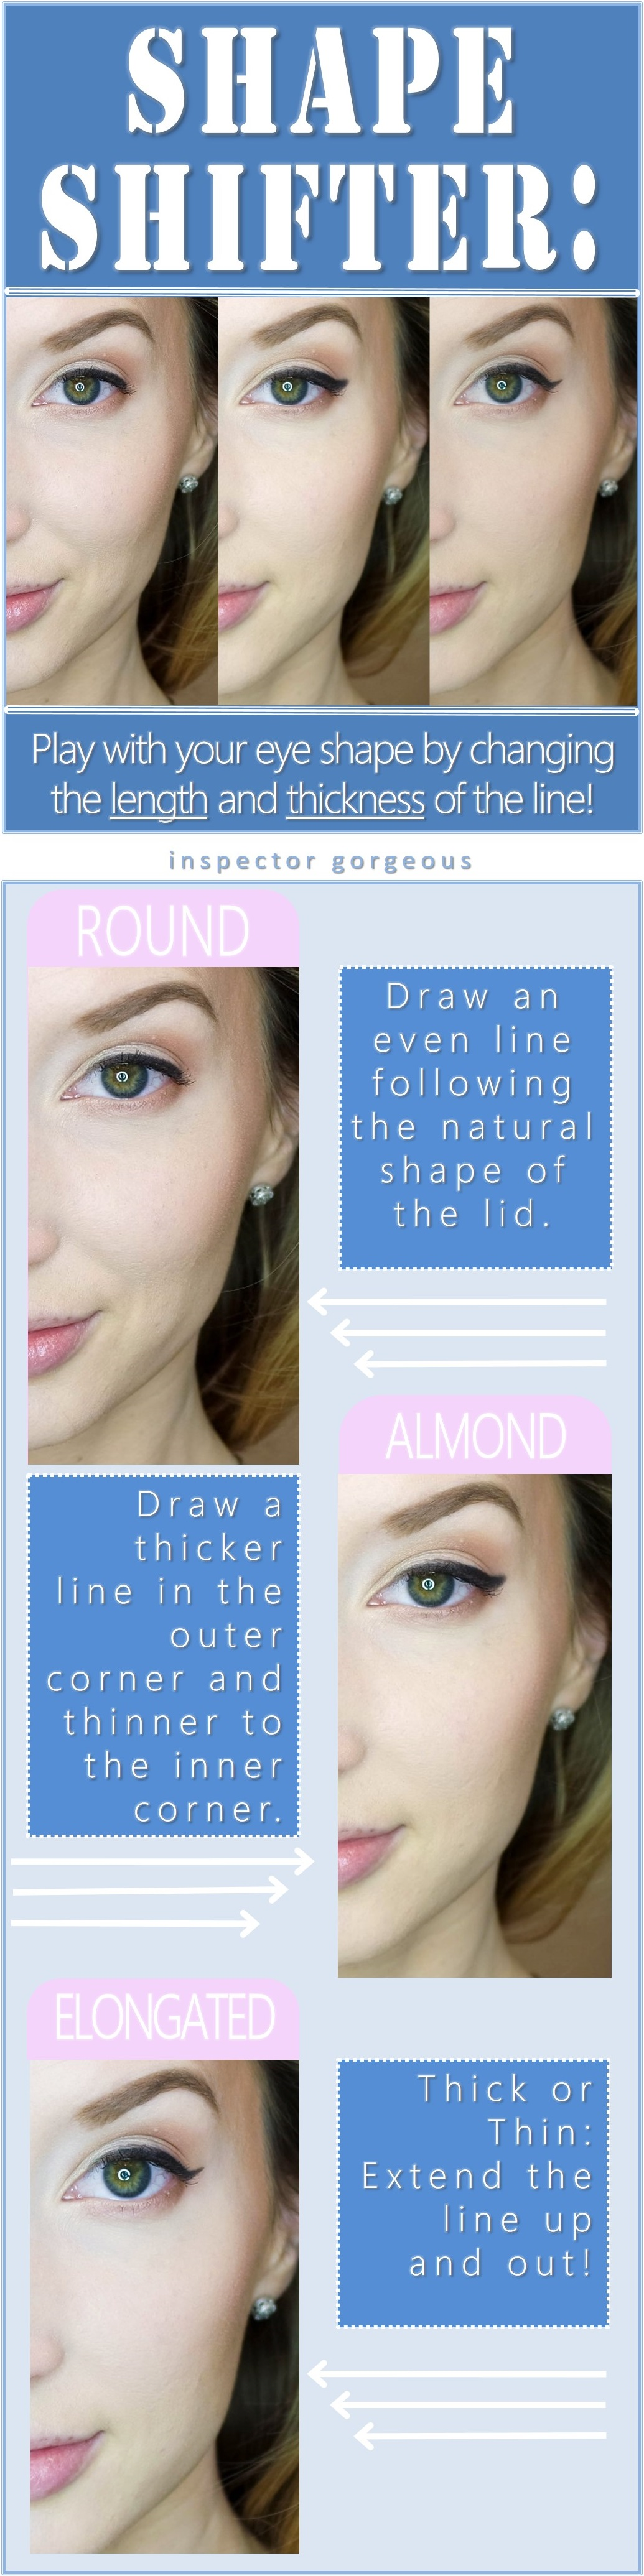 Three Way: An Eye Lining Experiment